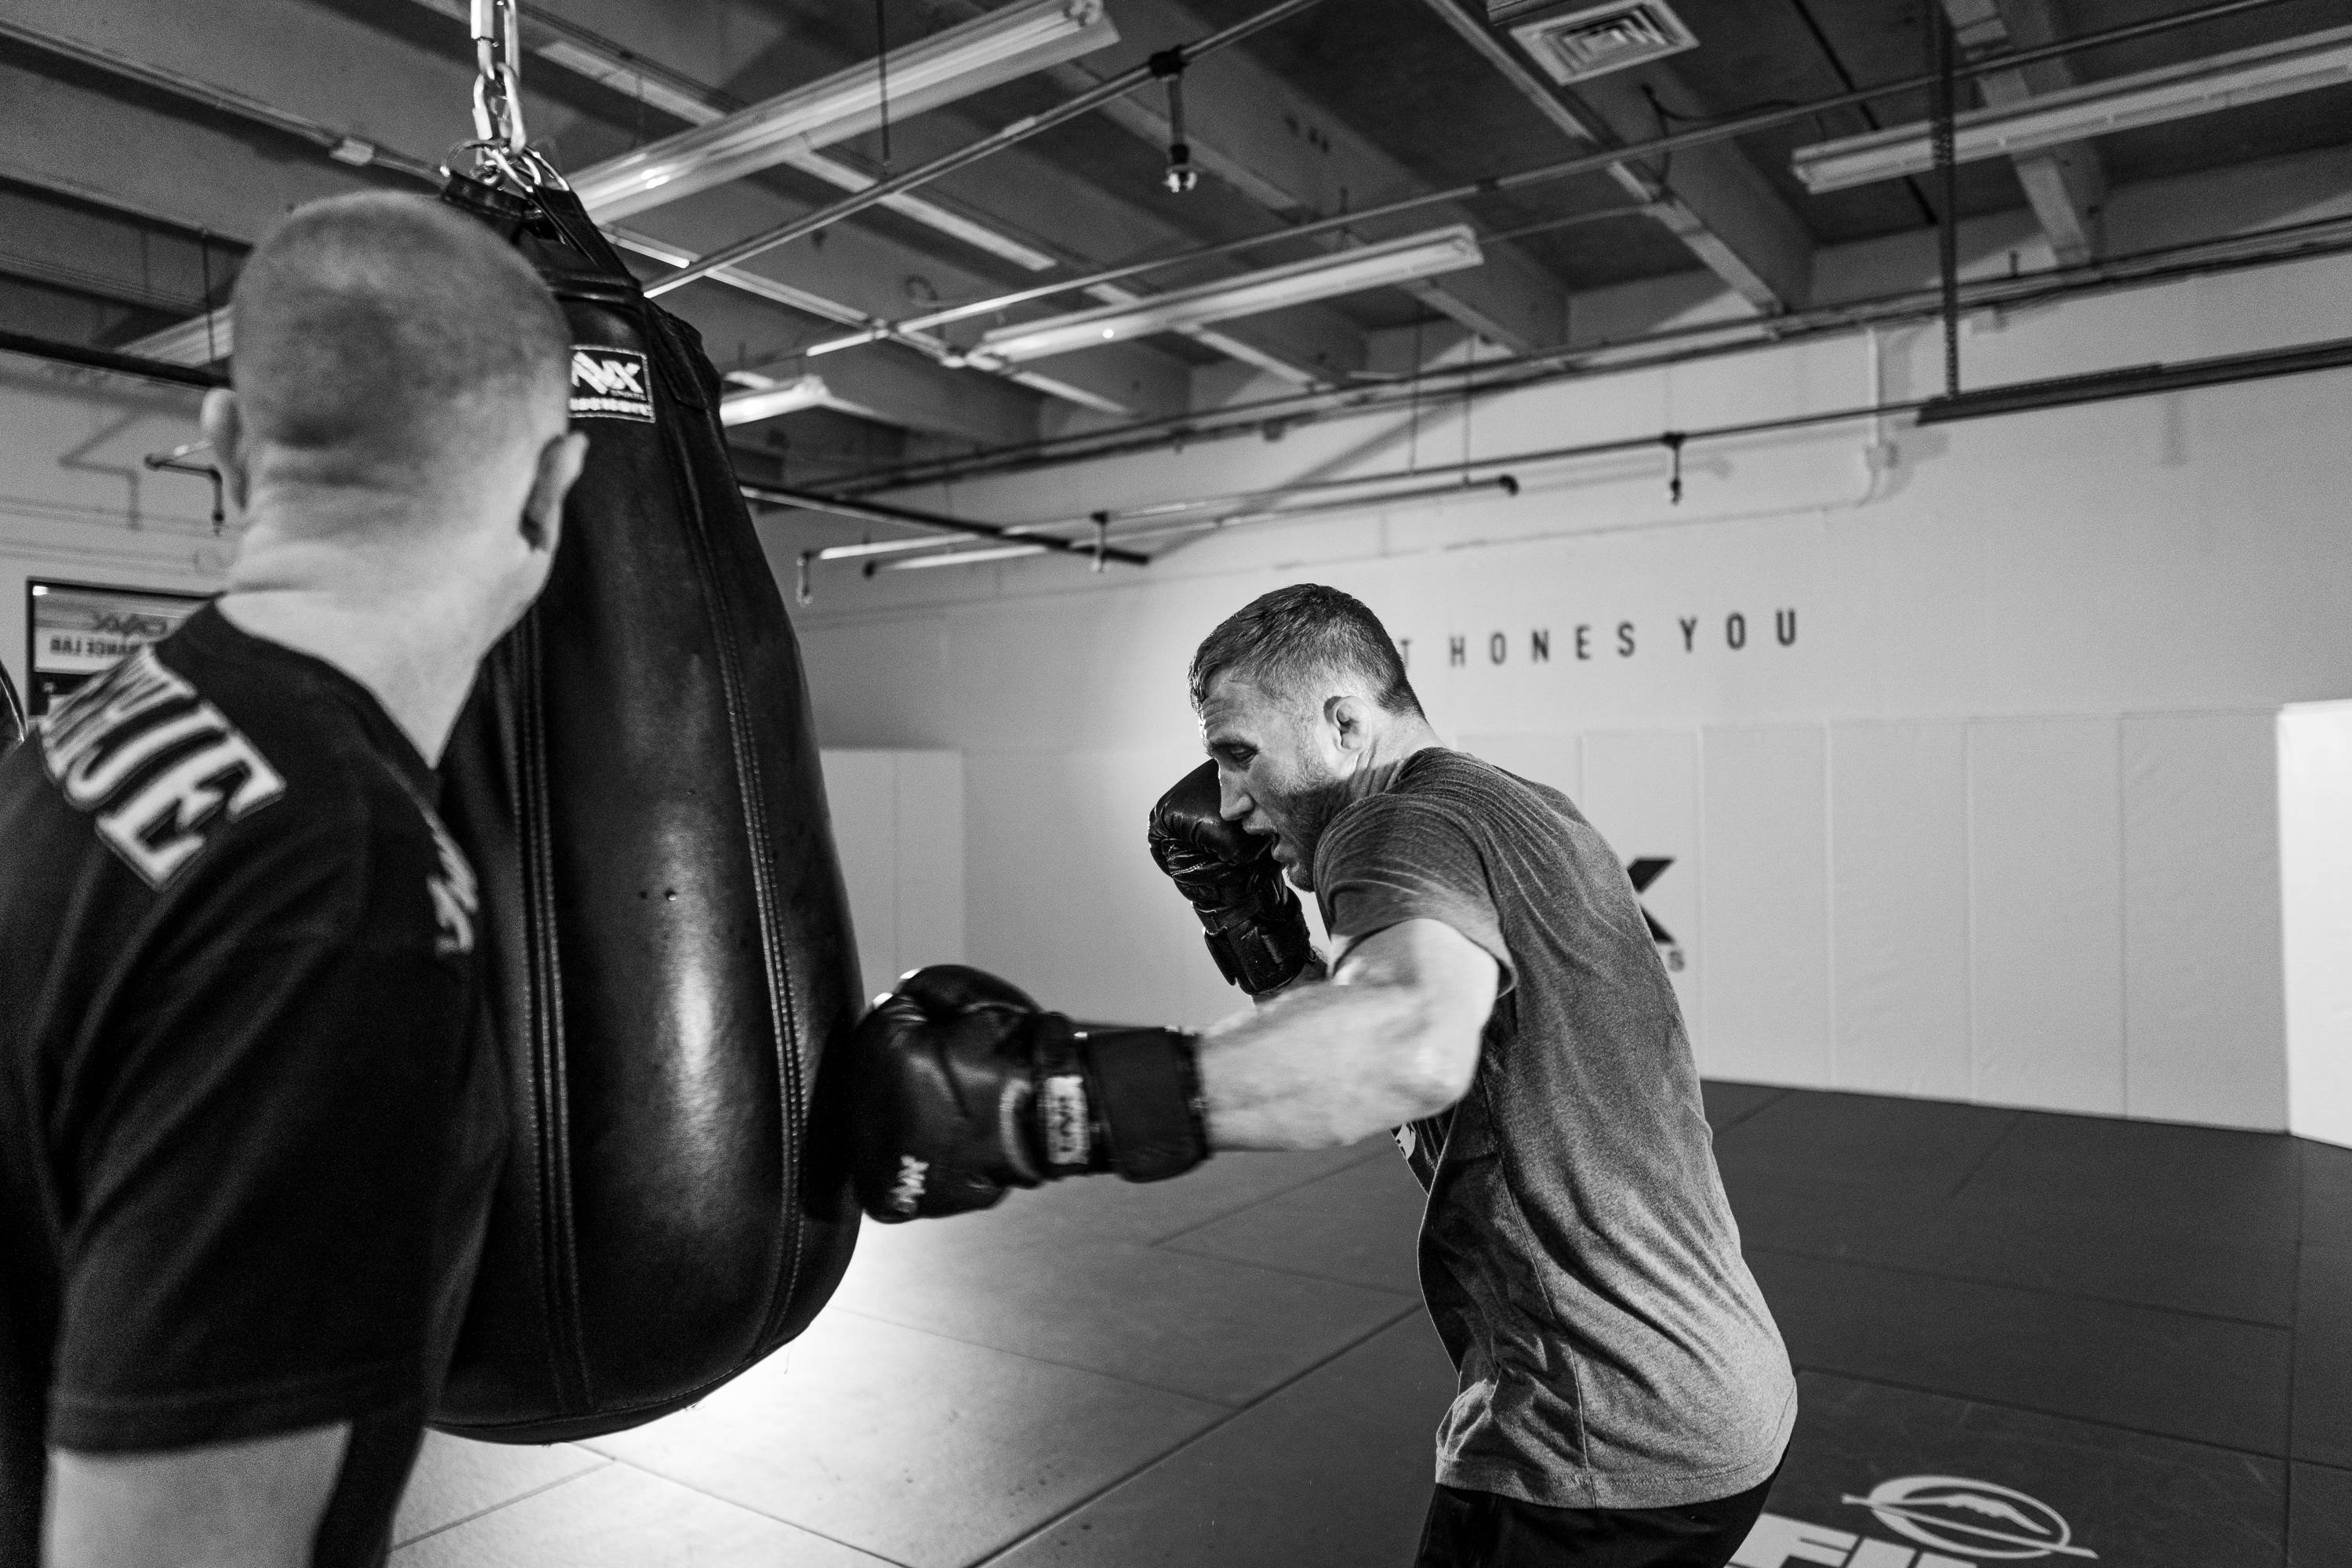 Justin Gaethje, Heavy Bag, ONX Sports, Boxing Gloves, Boxing Equipment, MMA Gloves, Boxing Headgear, Boxing Gear, Hand Wraps, Combat Sports, MMA Gear, Martial Arts Supplies, Muay Thai Gloves, Sparring Gloves, Fight Gloves, MMA Shin Guards, ONX Sports, Trevor Wittman